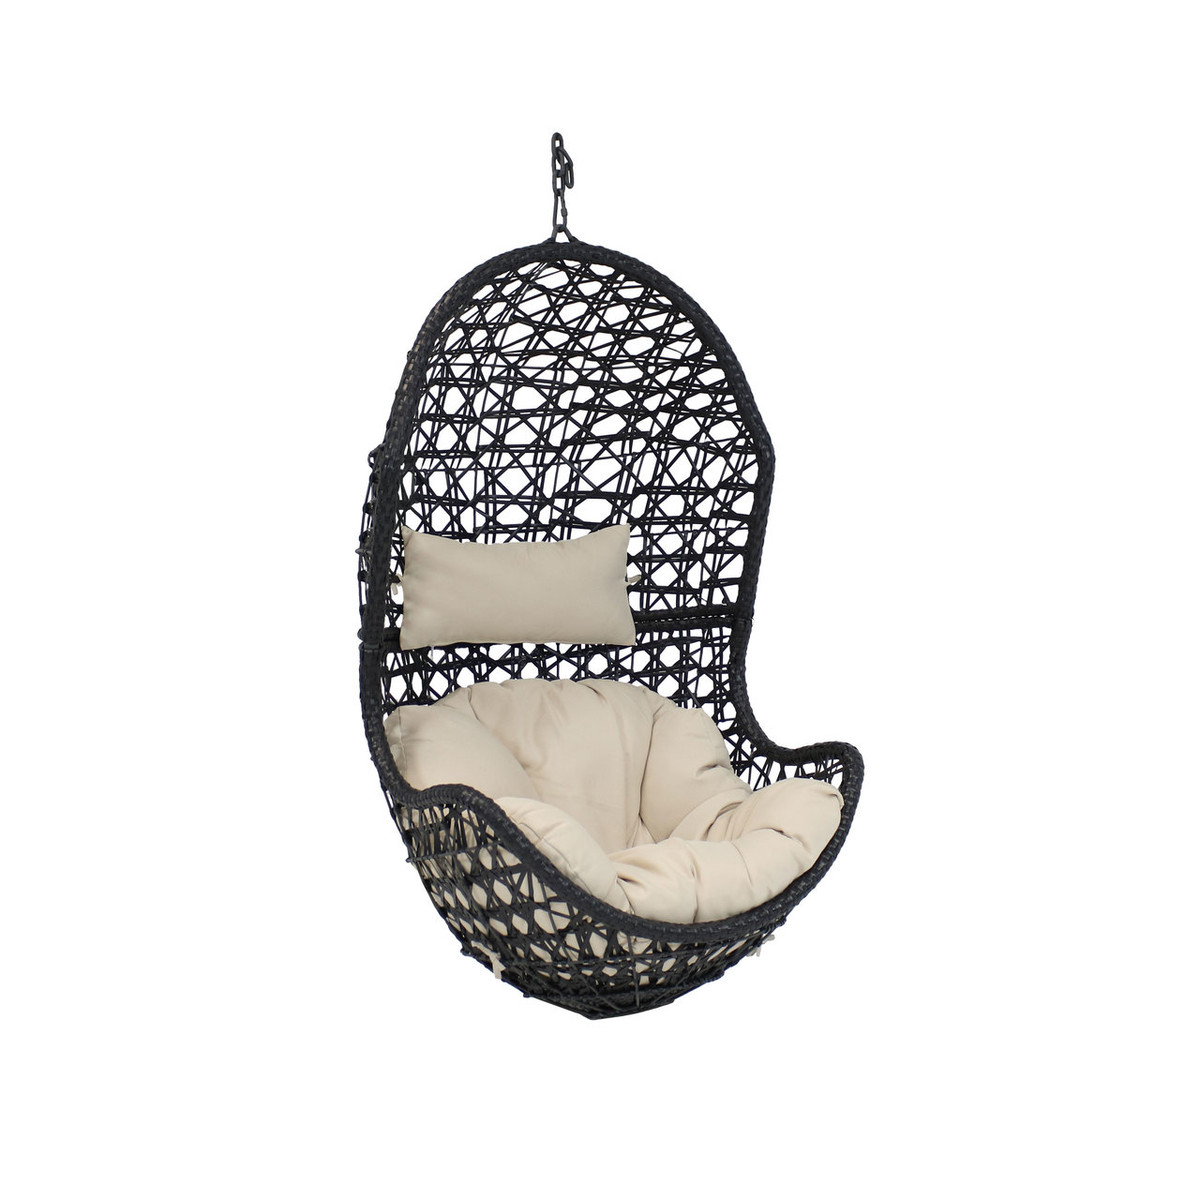 Stupendous Sunnydaze Cordelia Hanging Egg Chair Resin Wicker Large Caraccident5 Cool Chair Designs And Ideas Caraccident5Info